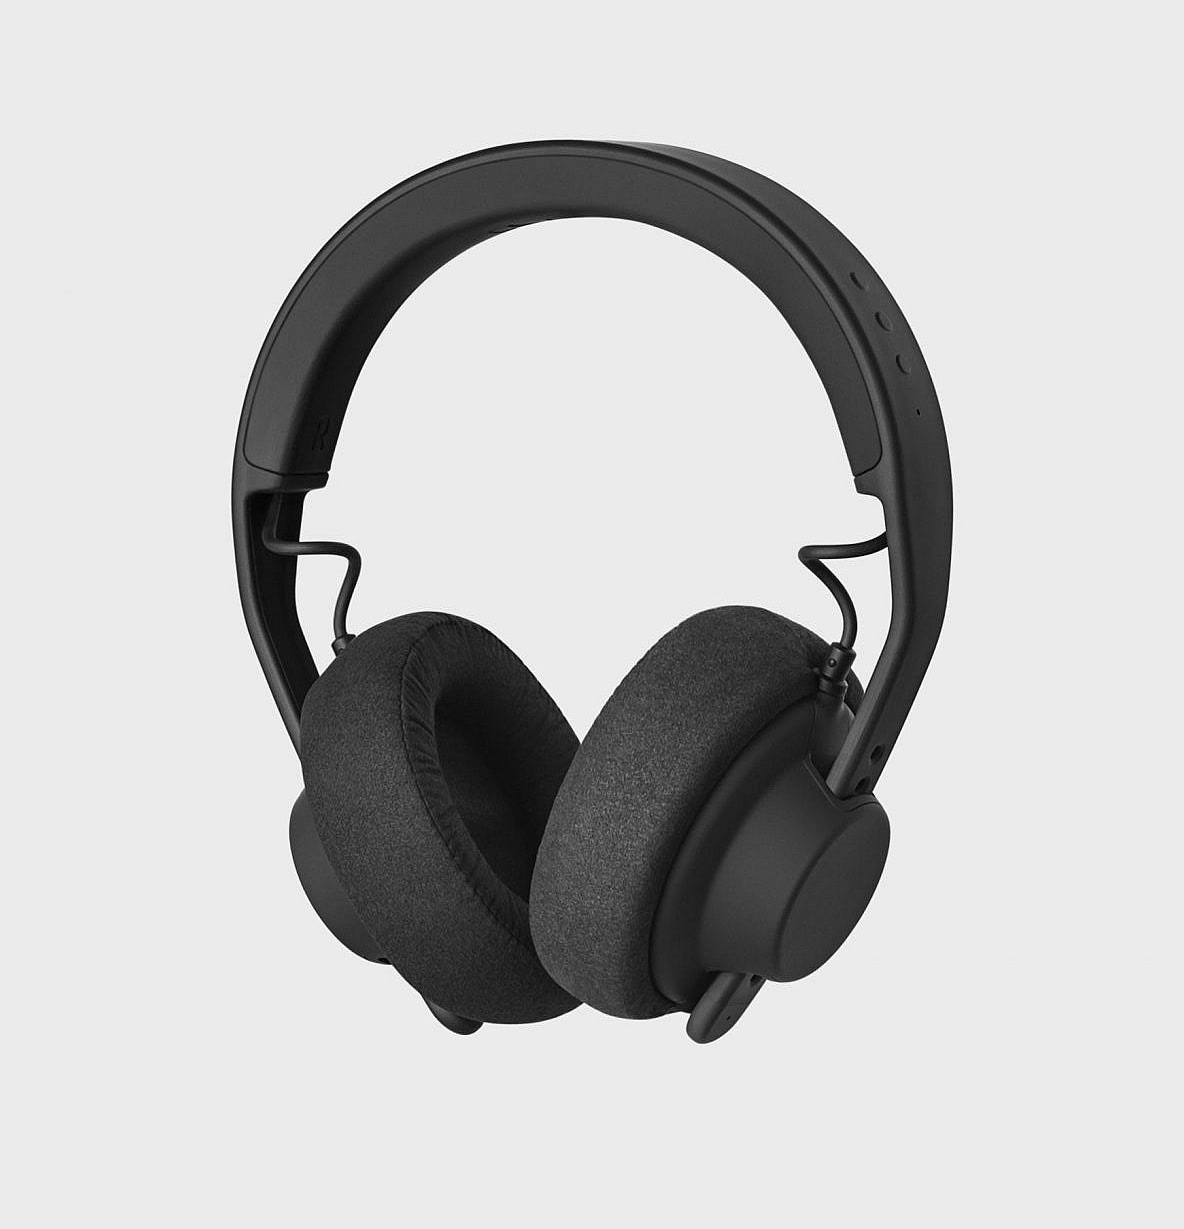 aiaiai tma 2 hd wireless headphones